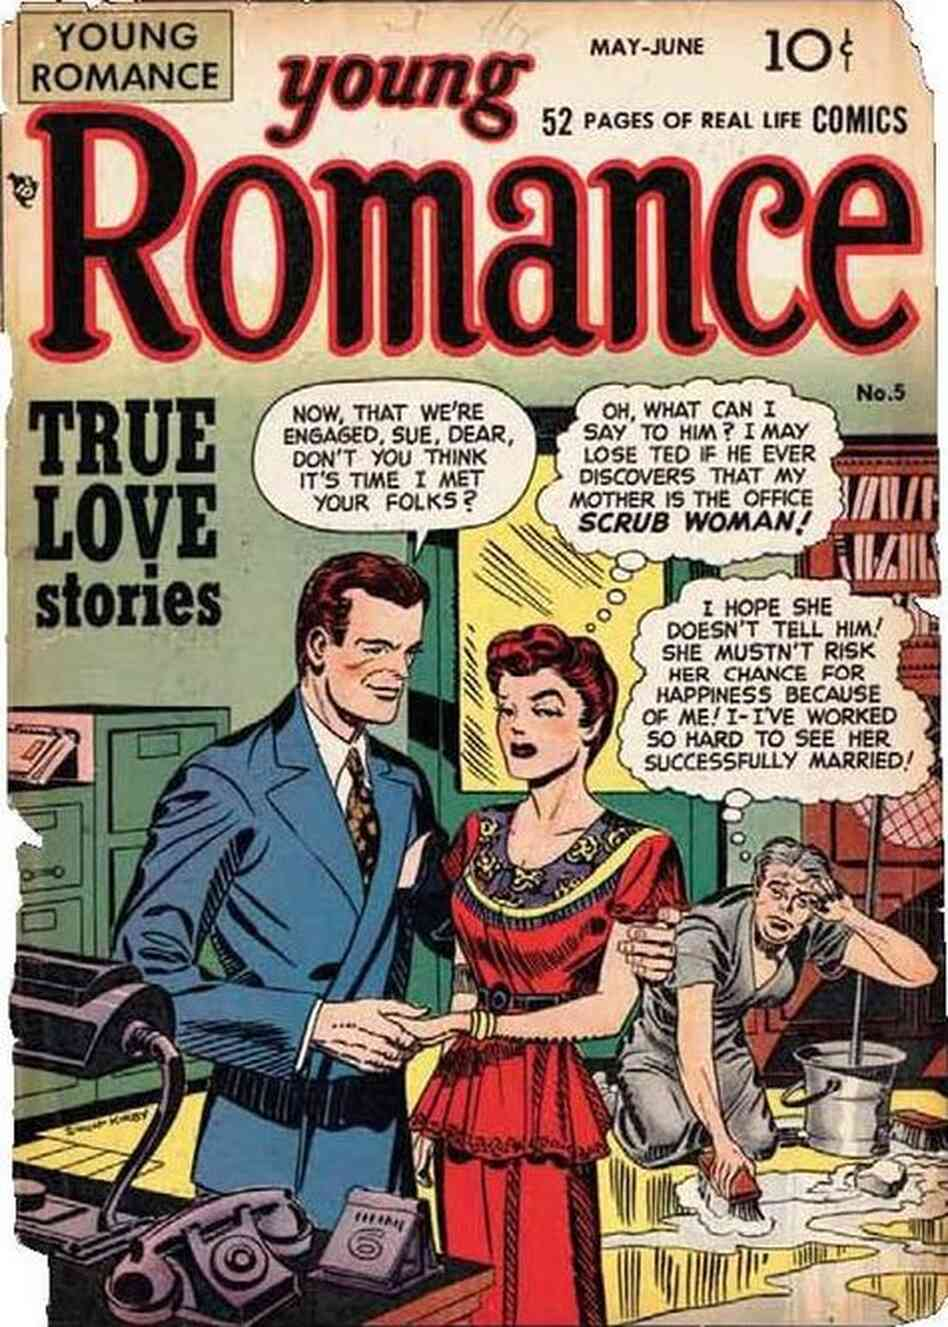 Young Romance, Issue #5, May-June.